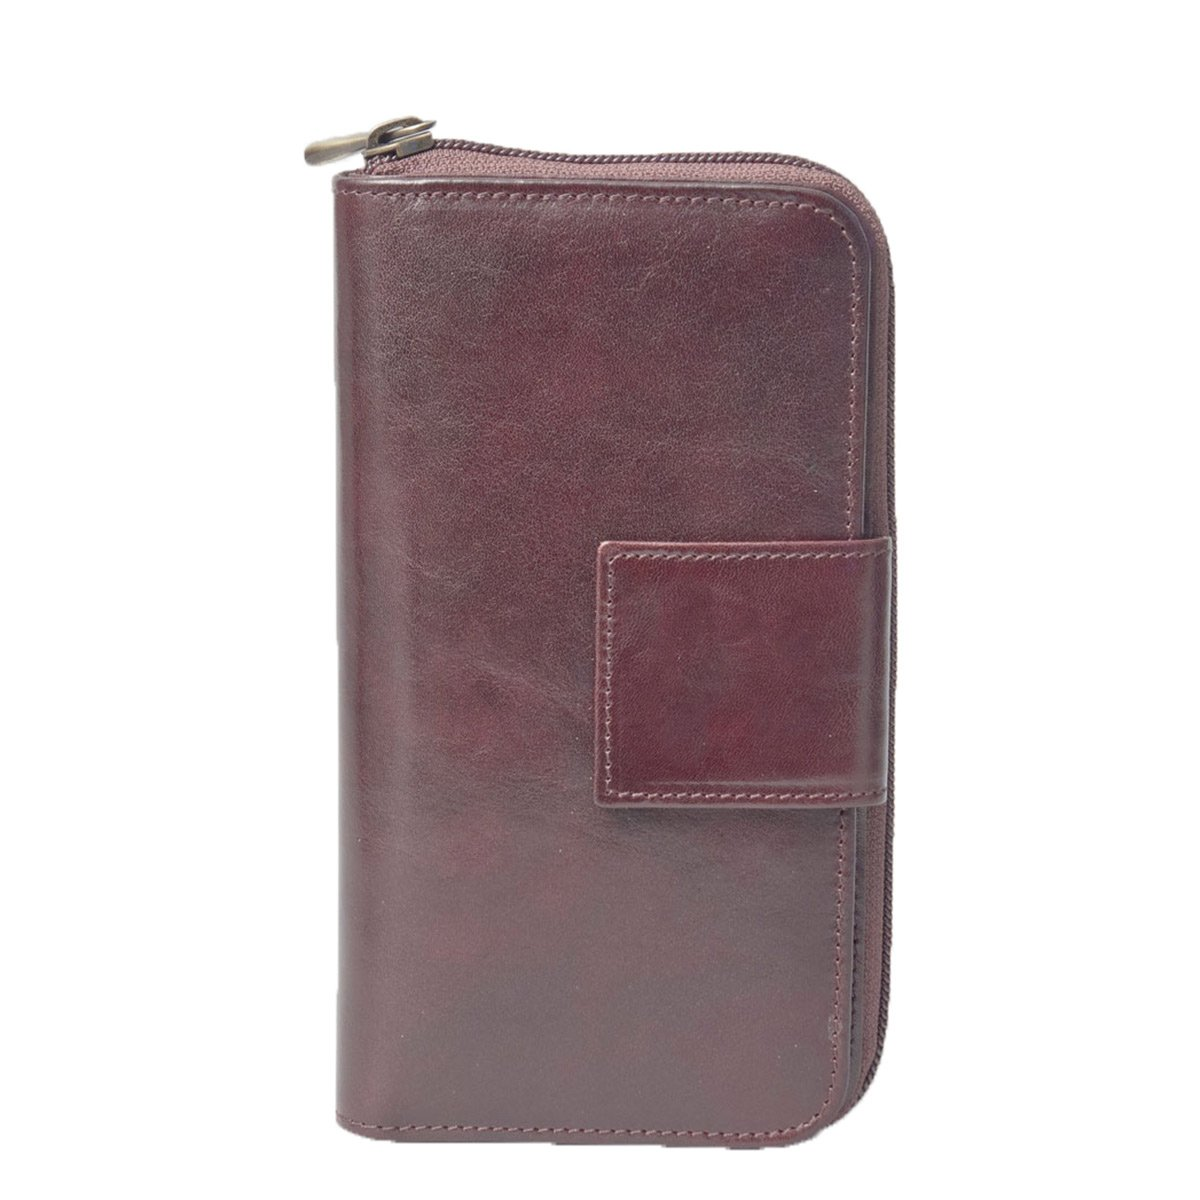 Maxwell Scott Luxury Leather Brown Zip Wallet for Ladies - Large (The Giorgia)